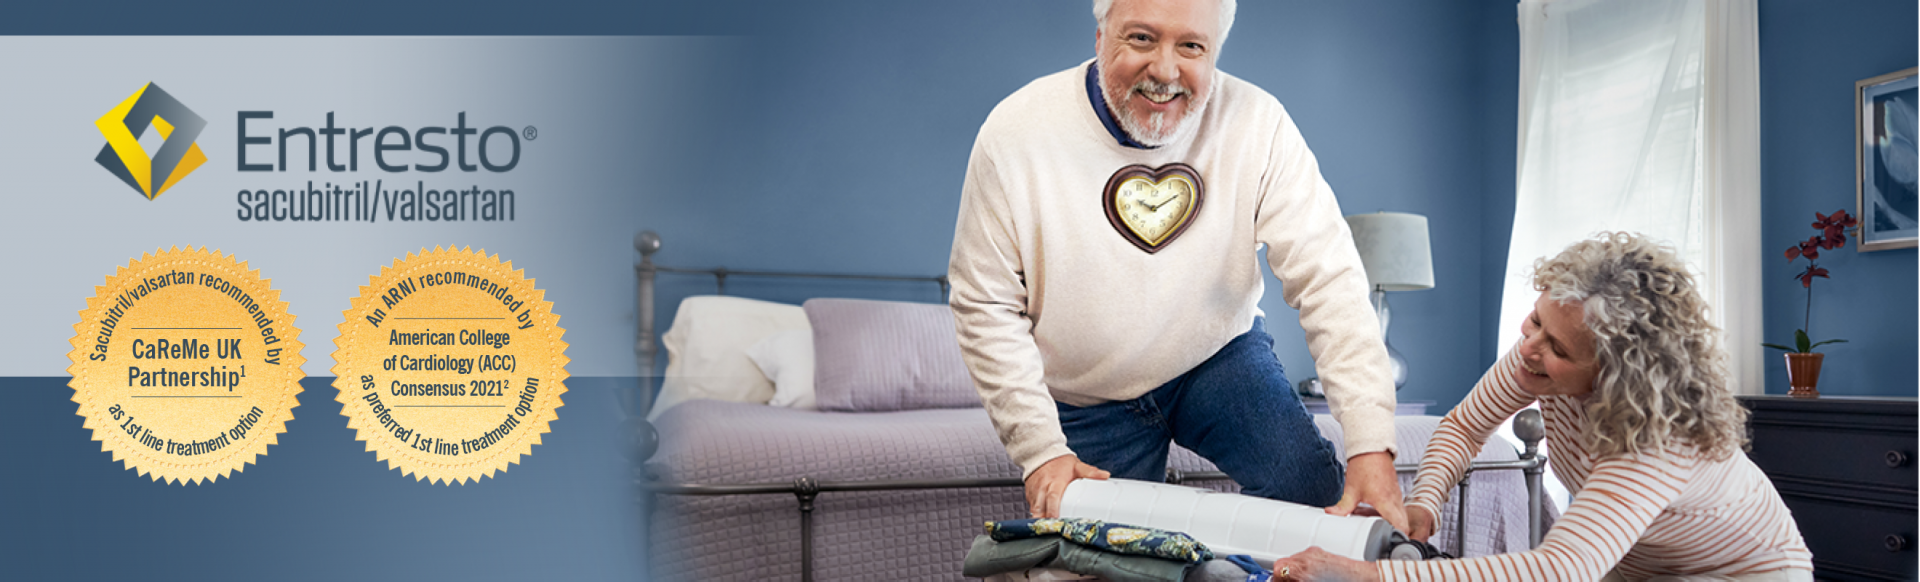 Top banner. Branded banner. Entresto sacubitril/valsartan. Image of a man smiling with a heart-shaped clock on his chest, with a woman smiling and packing a suitcase.